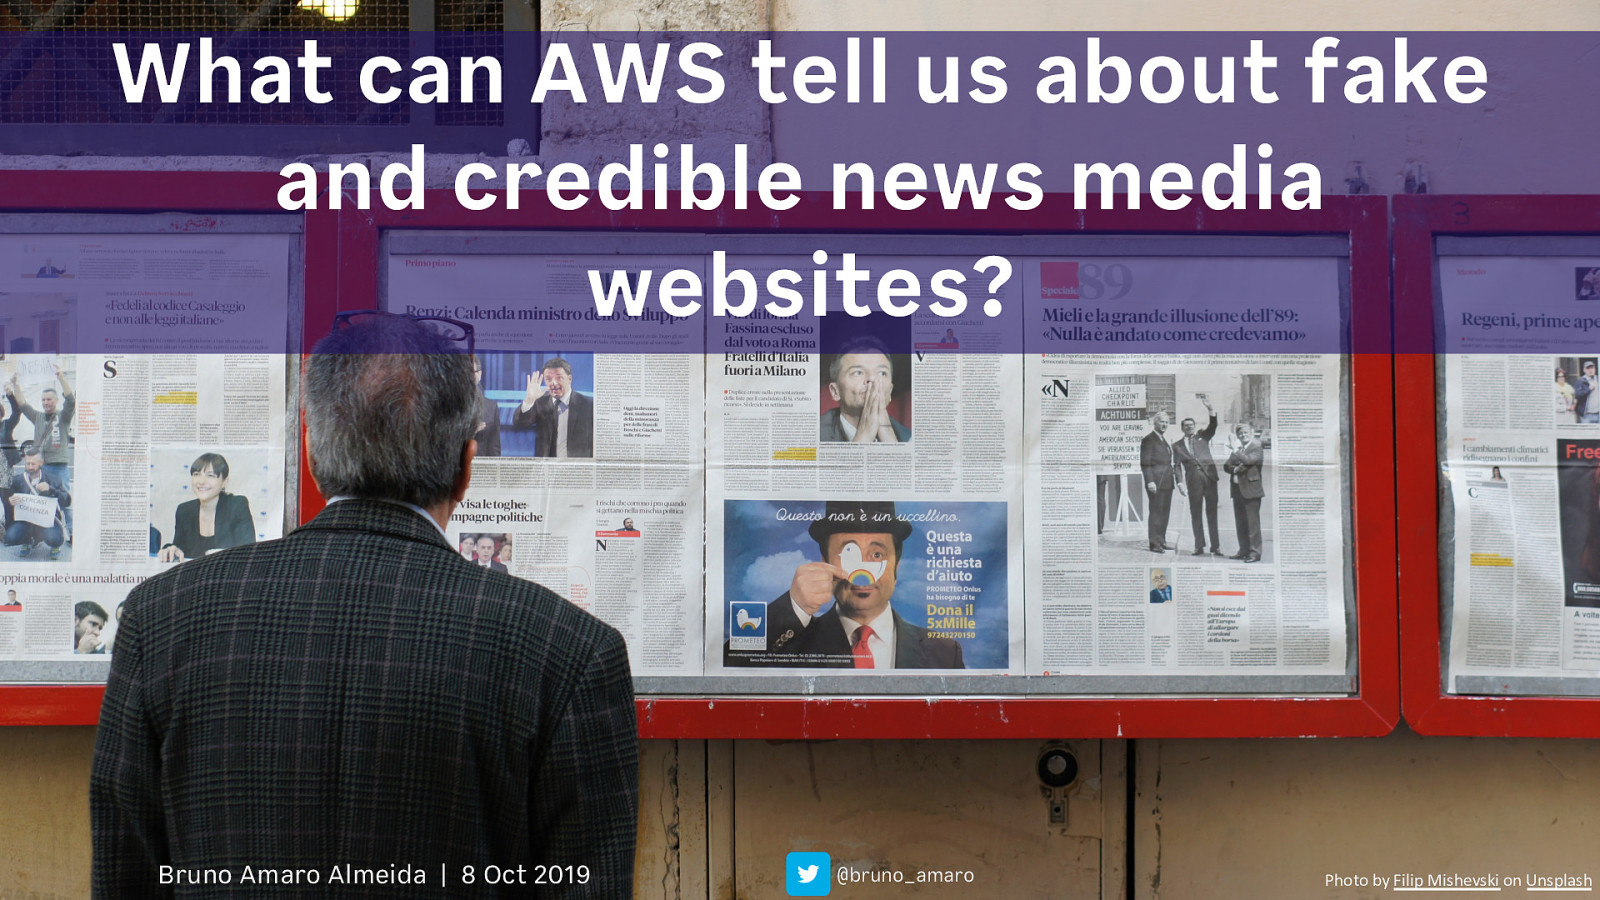 What can AWS tell us about Fake and Credible News?